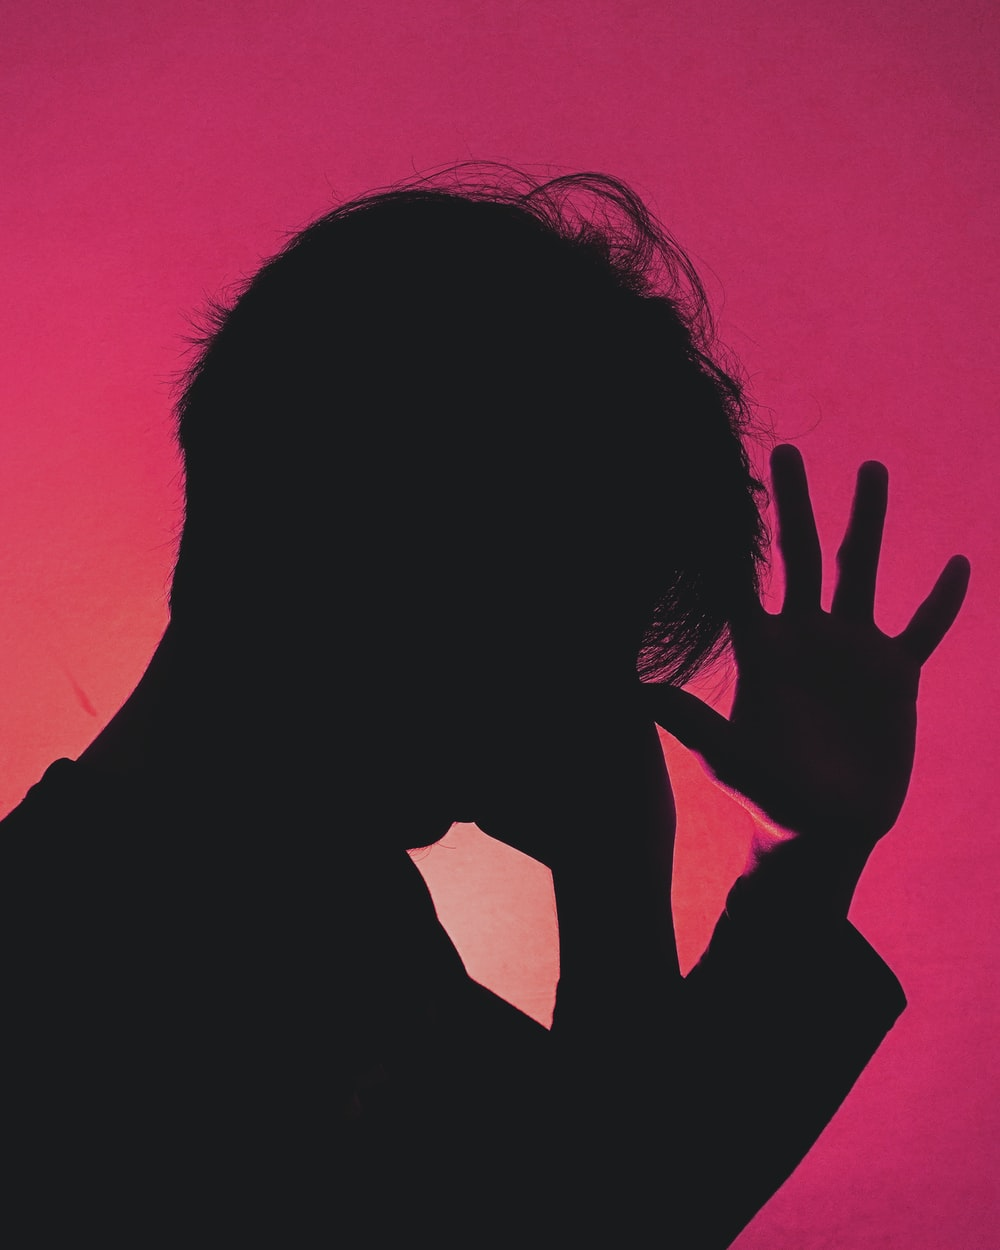 silhouette of person covering face with hands